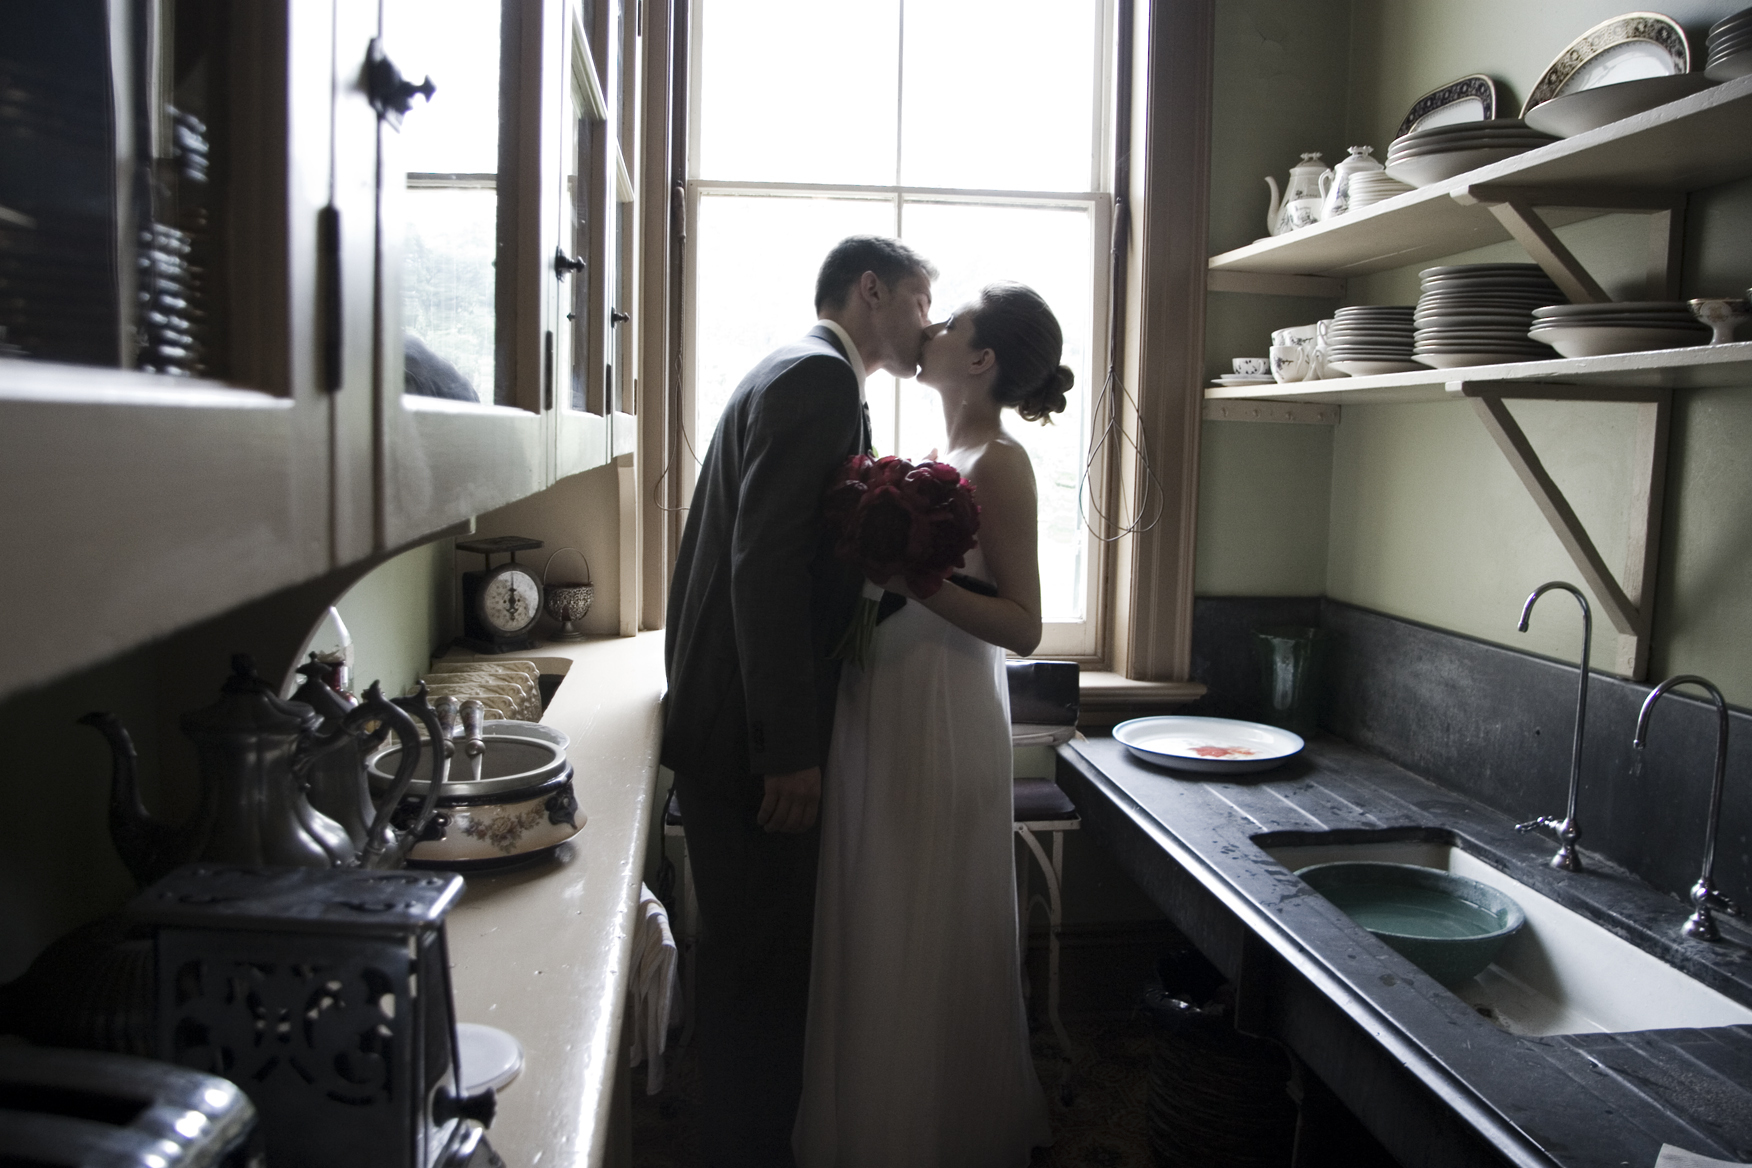 Registry, Bride, Kitchen, Kitchen Appliances, Groom, Sarah wiggins photography